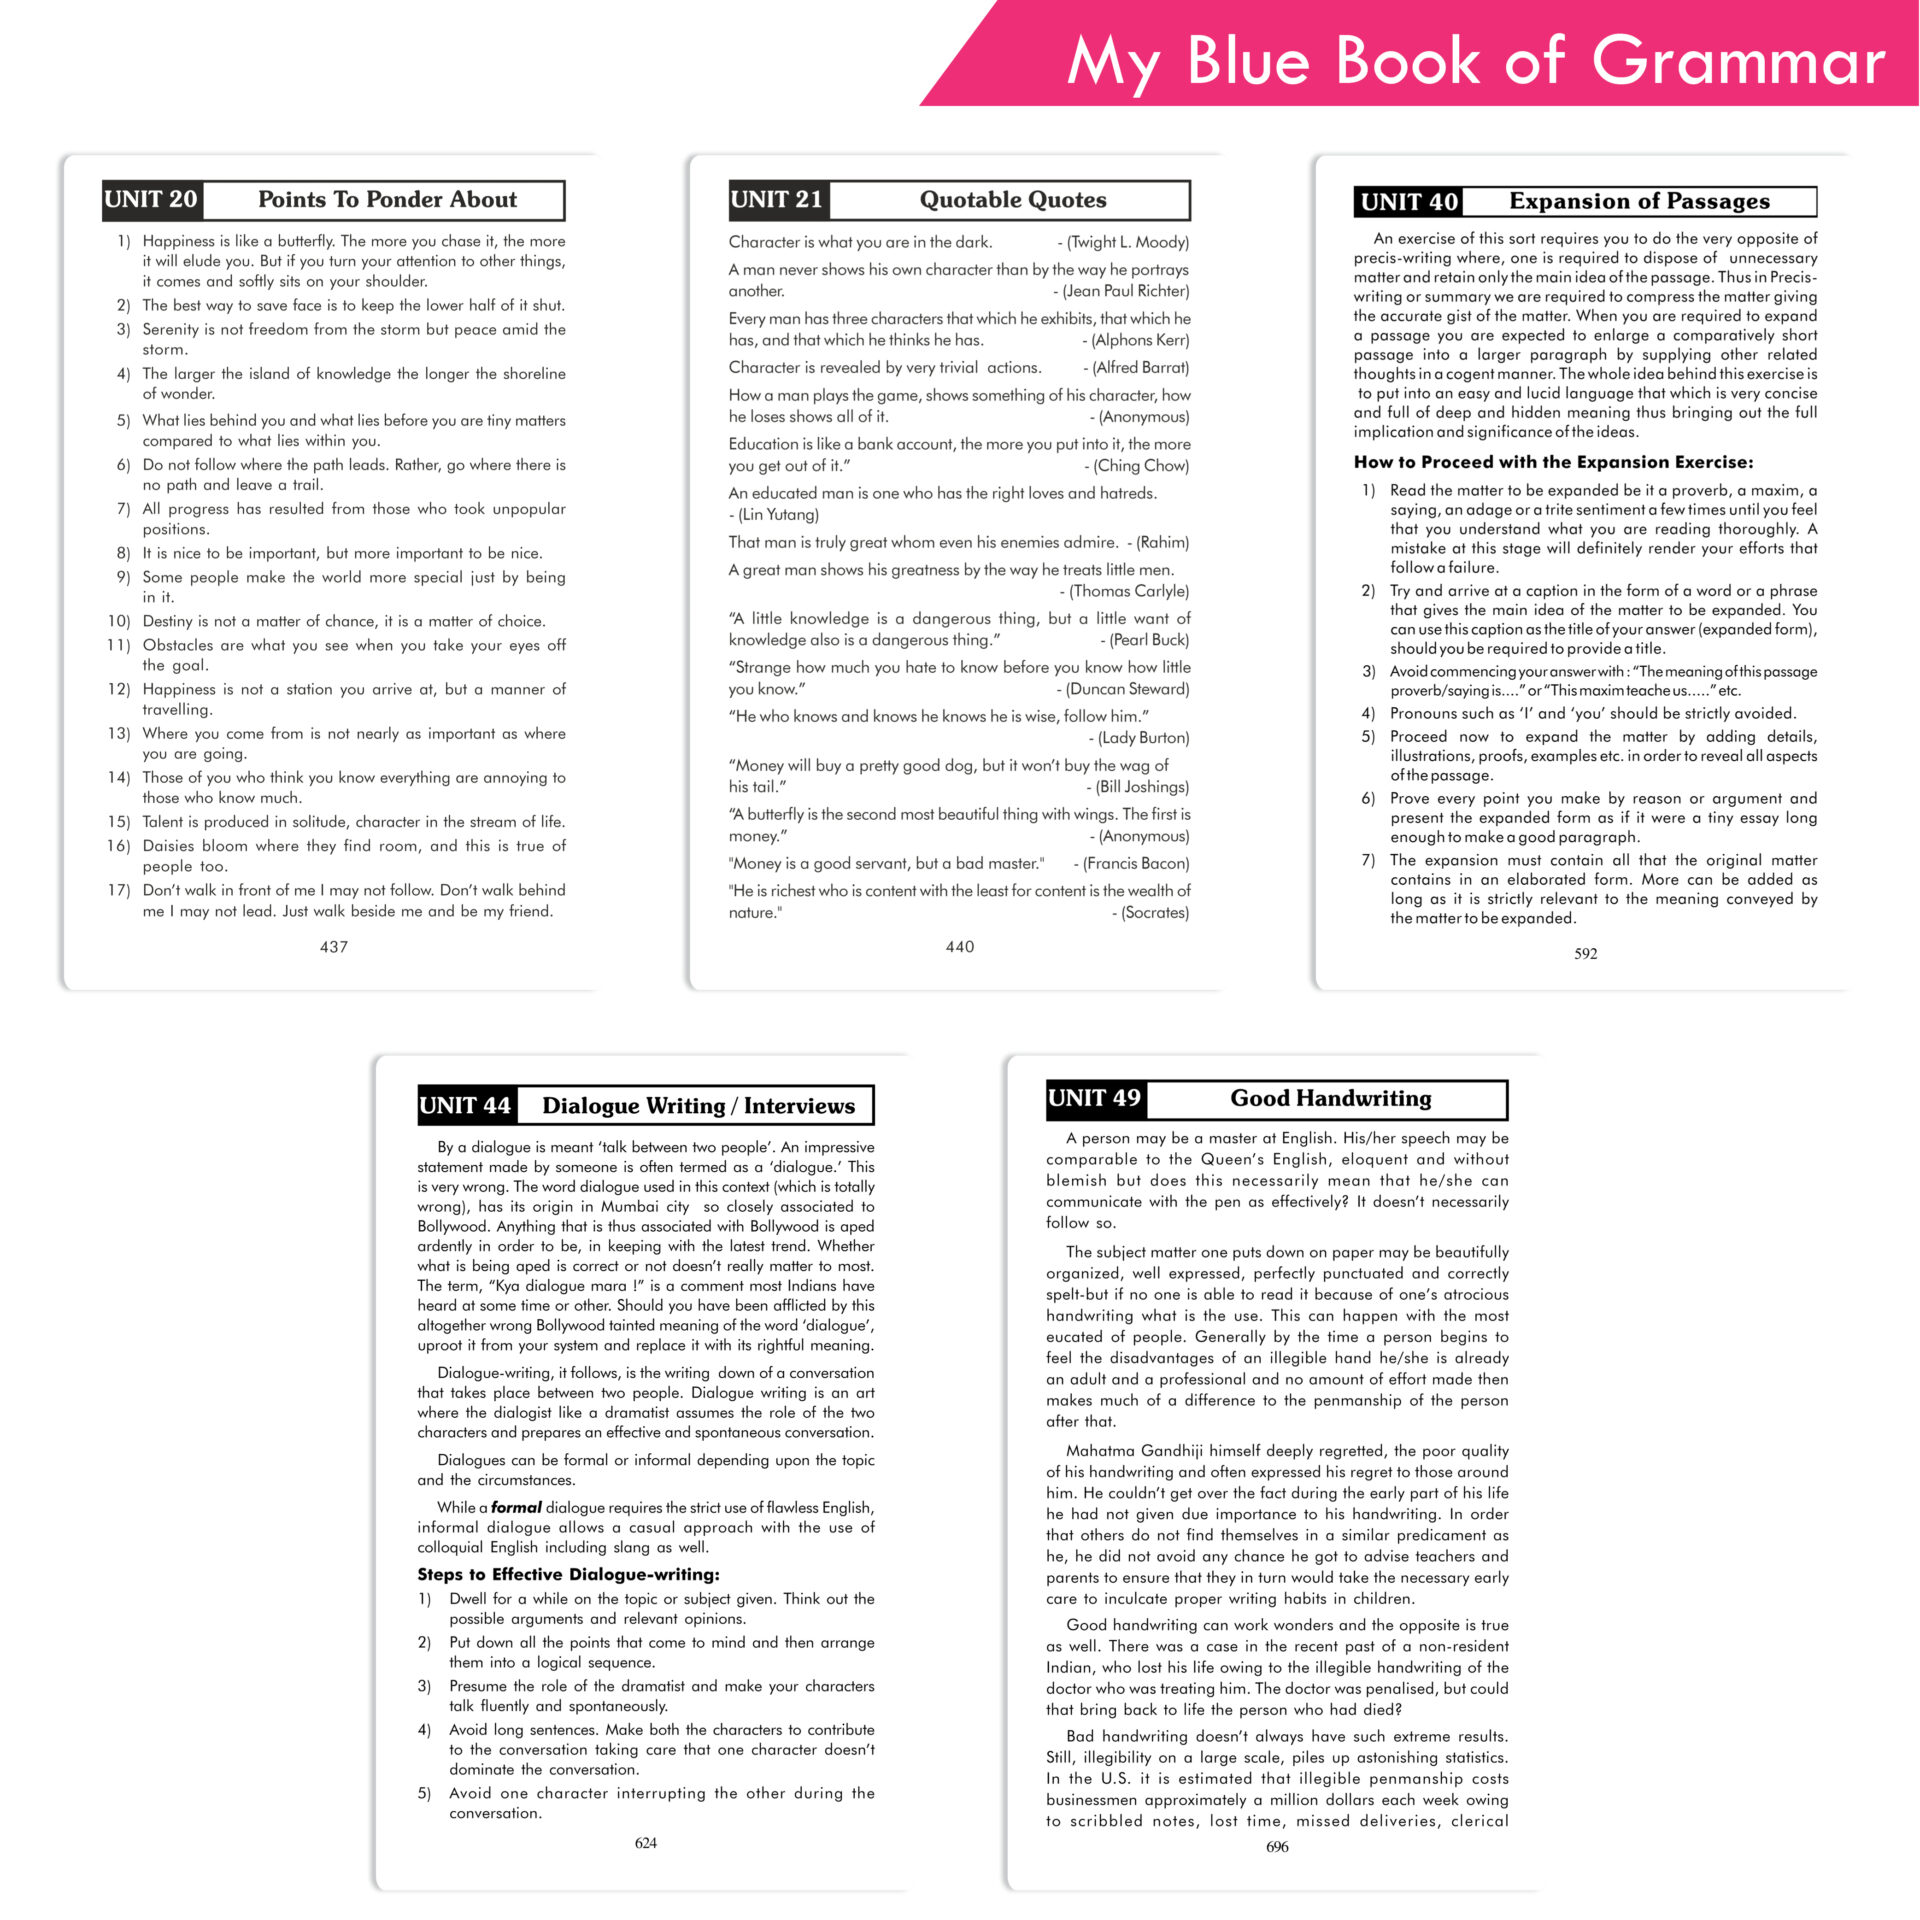 Sheth Books My Blue Book of Grammar With Answers 6